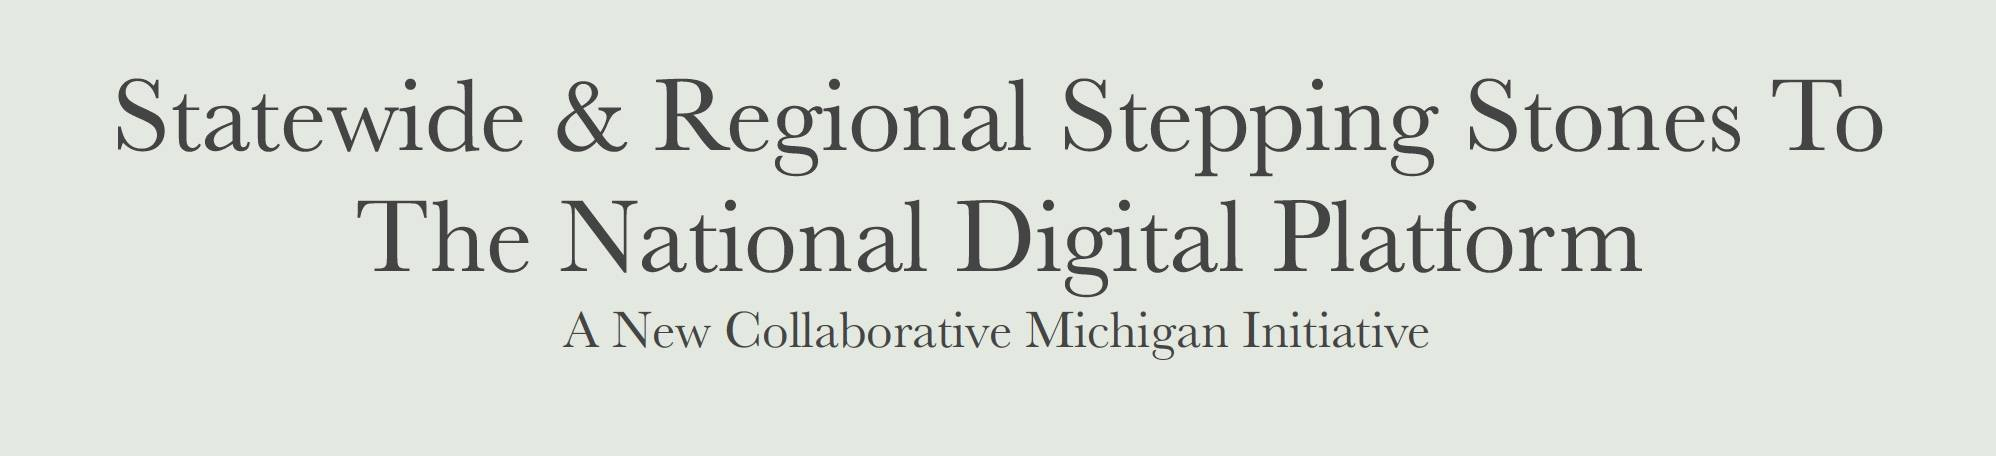 Statewide & Regional Stepping Stones to the National Digital Platform